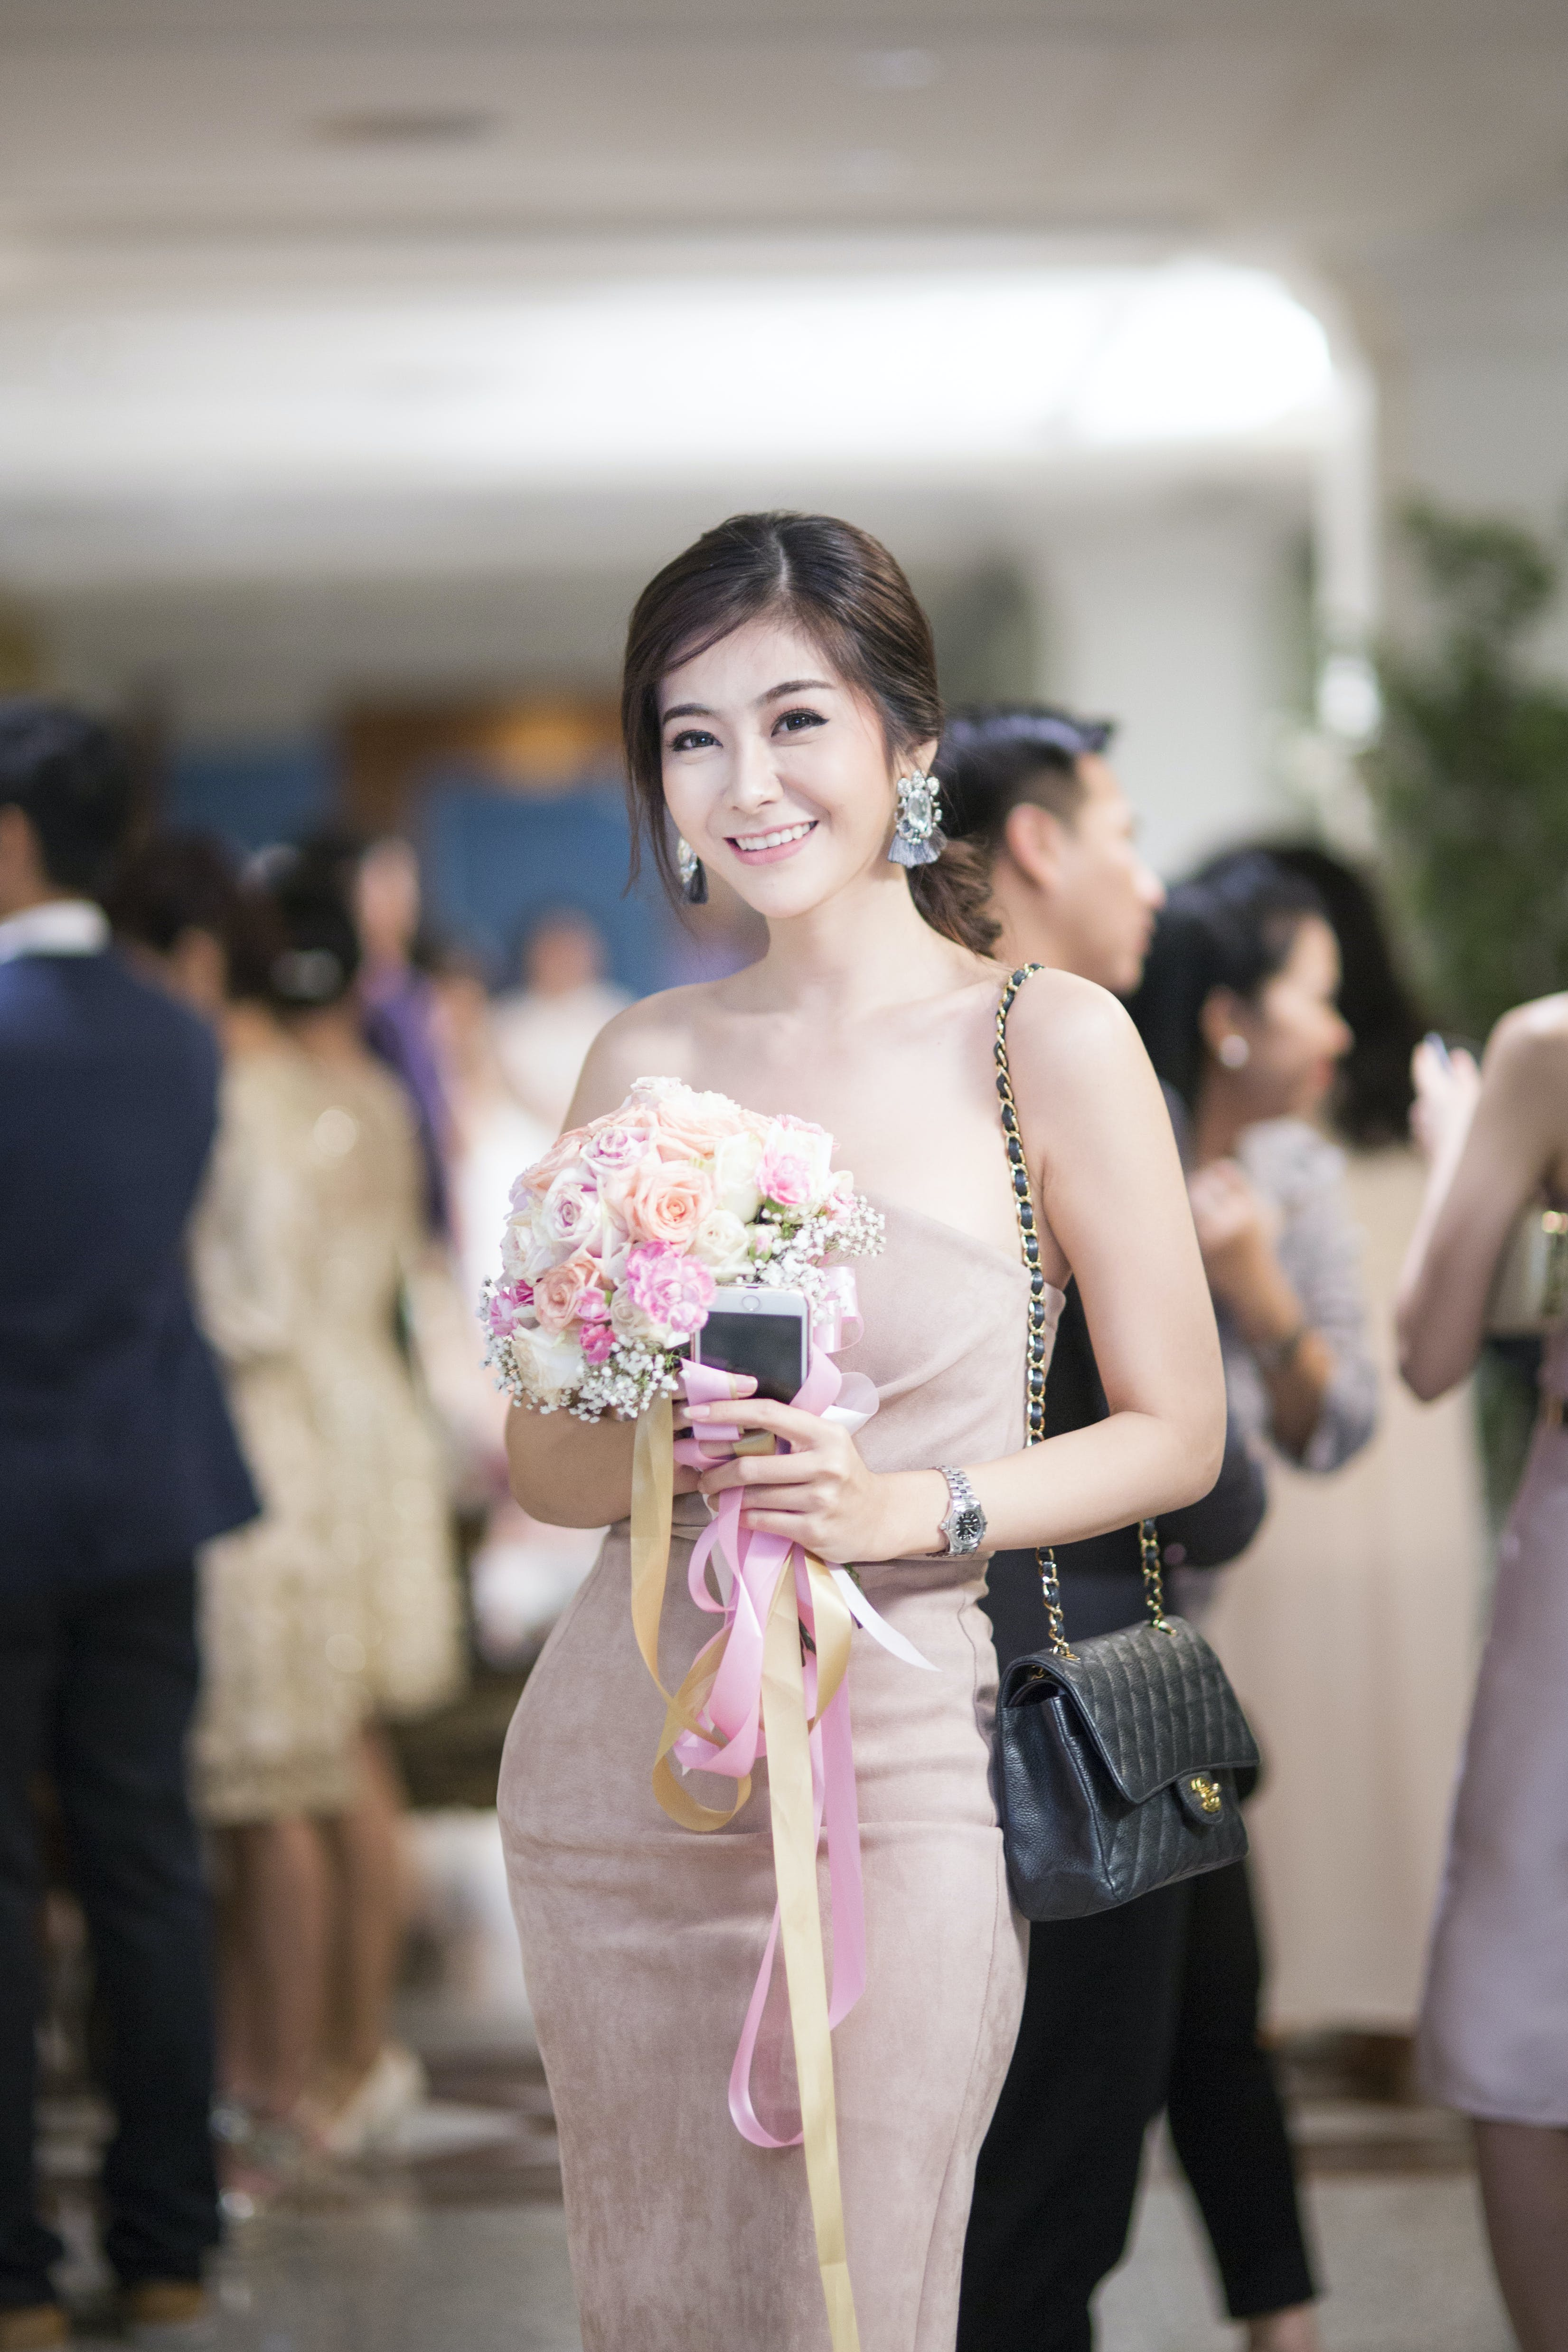 Woman in Pink Strapless Bodycon Dress Holding Flowers